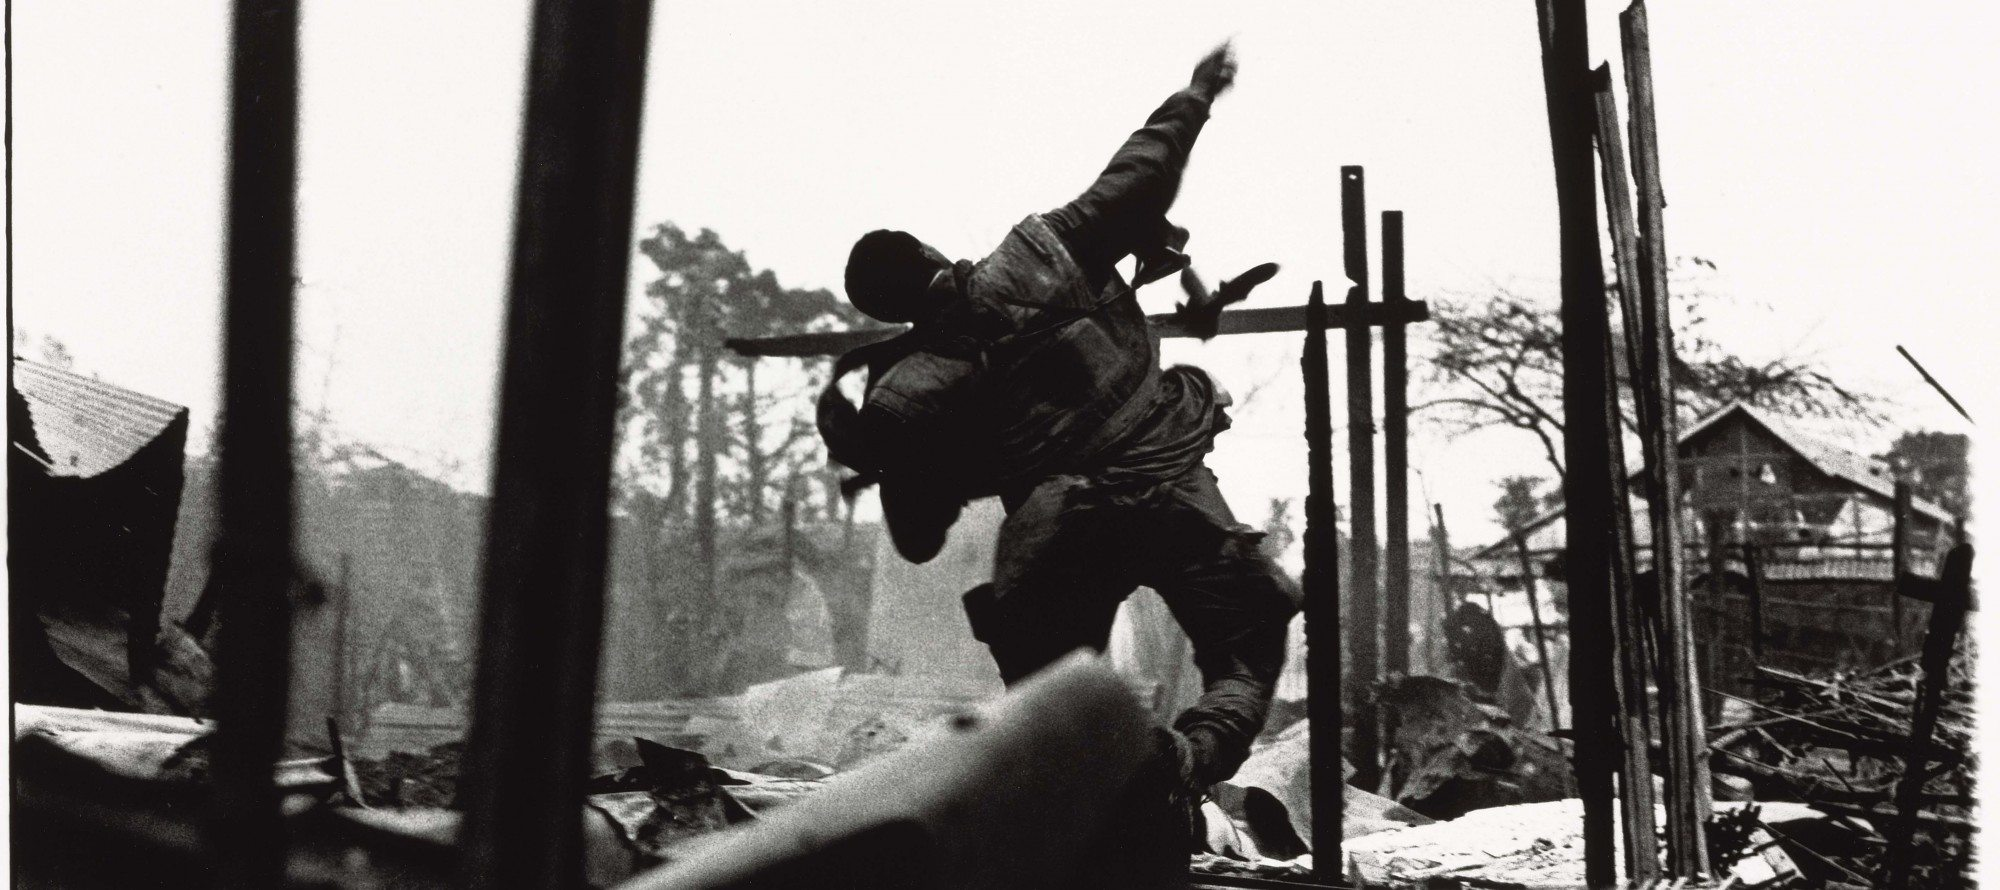 """ARTFUL BLOGGER: One of the leading war photographers of the 20th century exhibits his """"art"""" at the National Gallery"""